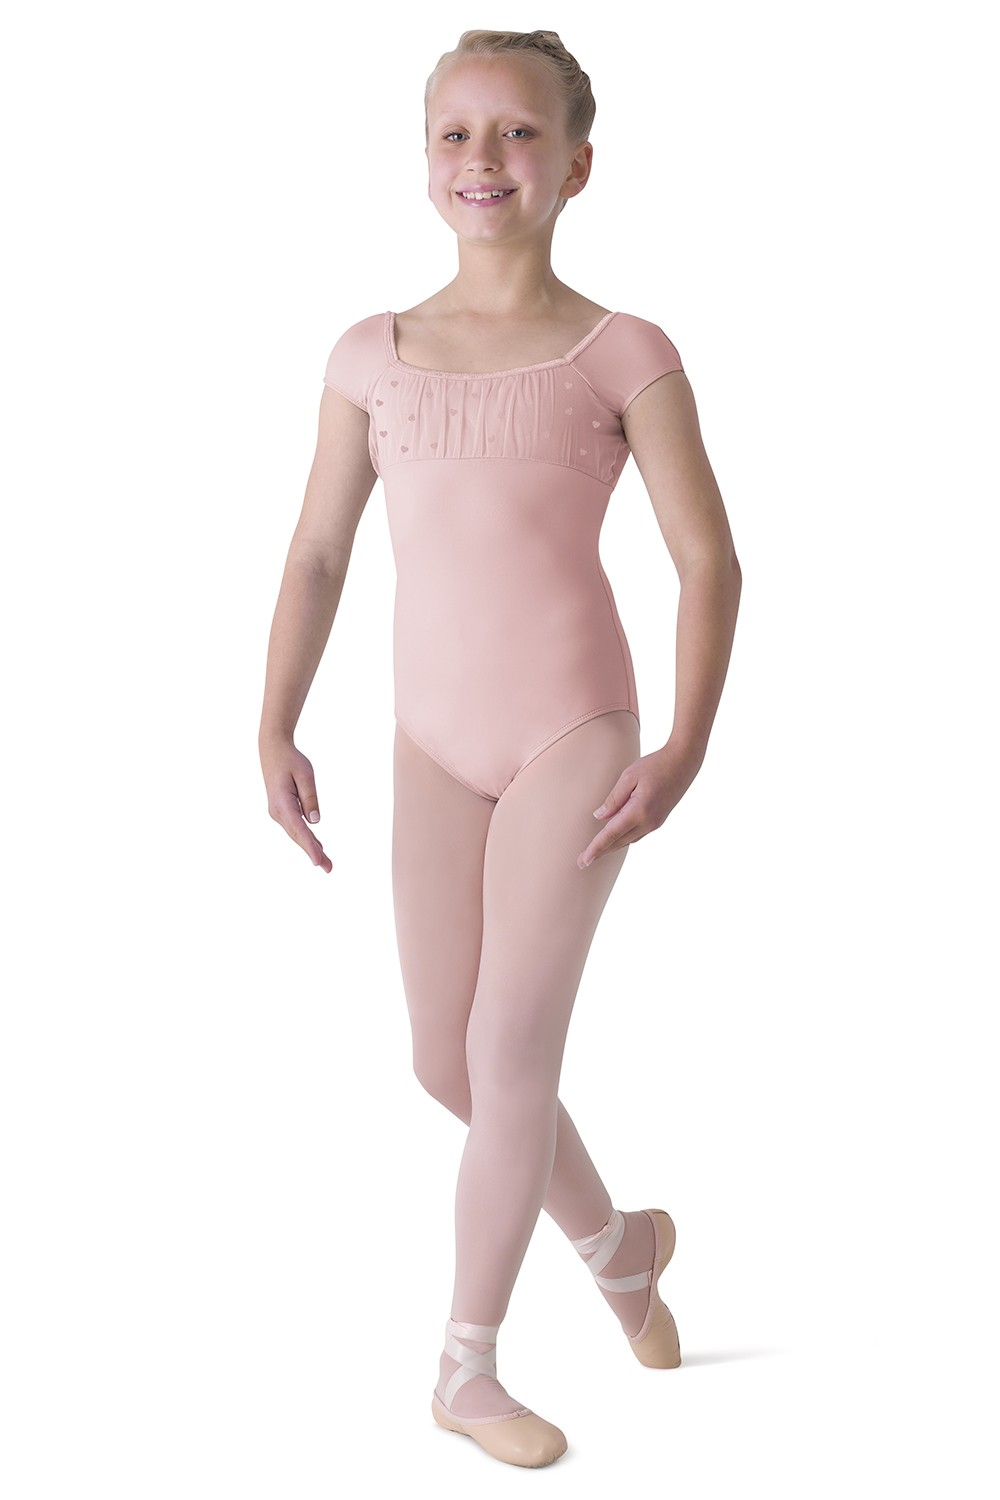 Front Heart Detail Cap Sleeve Leo Children's Dance Leotards